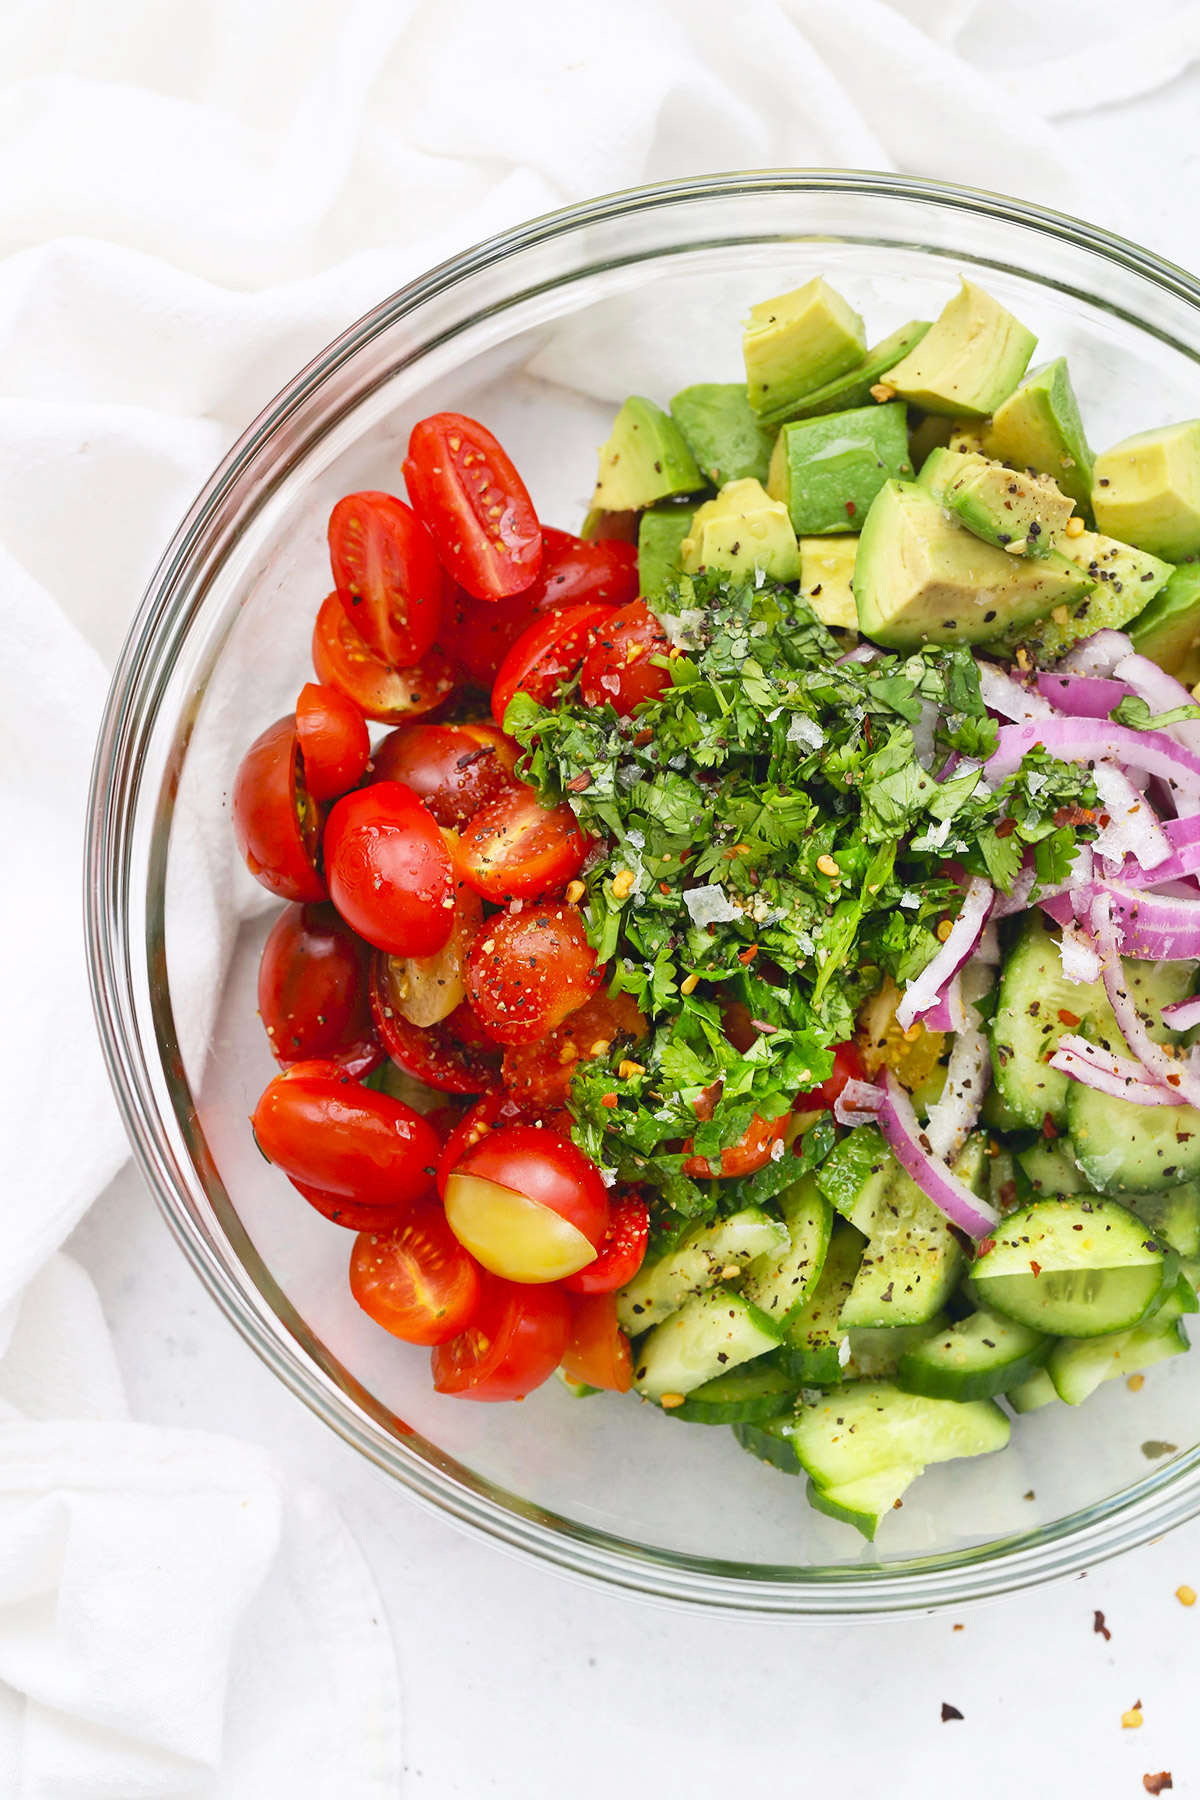 Glass bowl with ingredients for avocado, cucumber tomato salad.